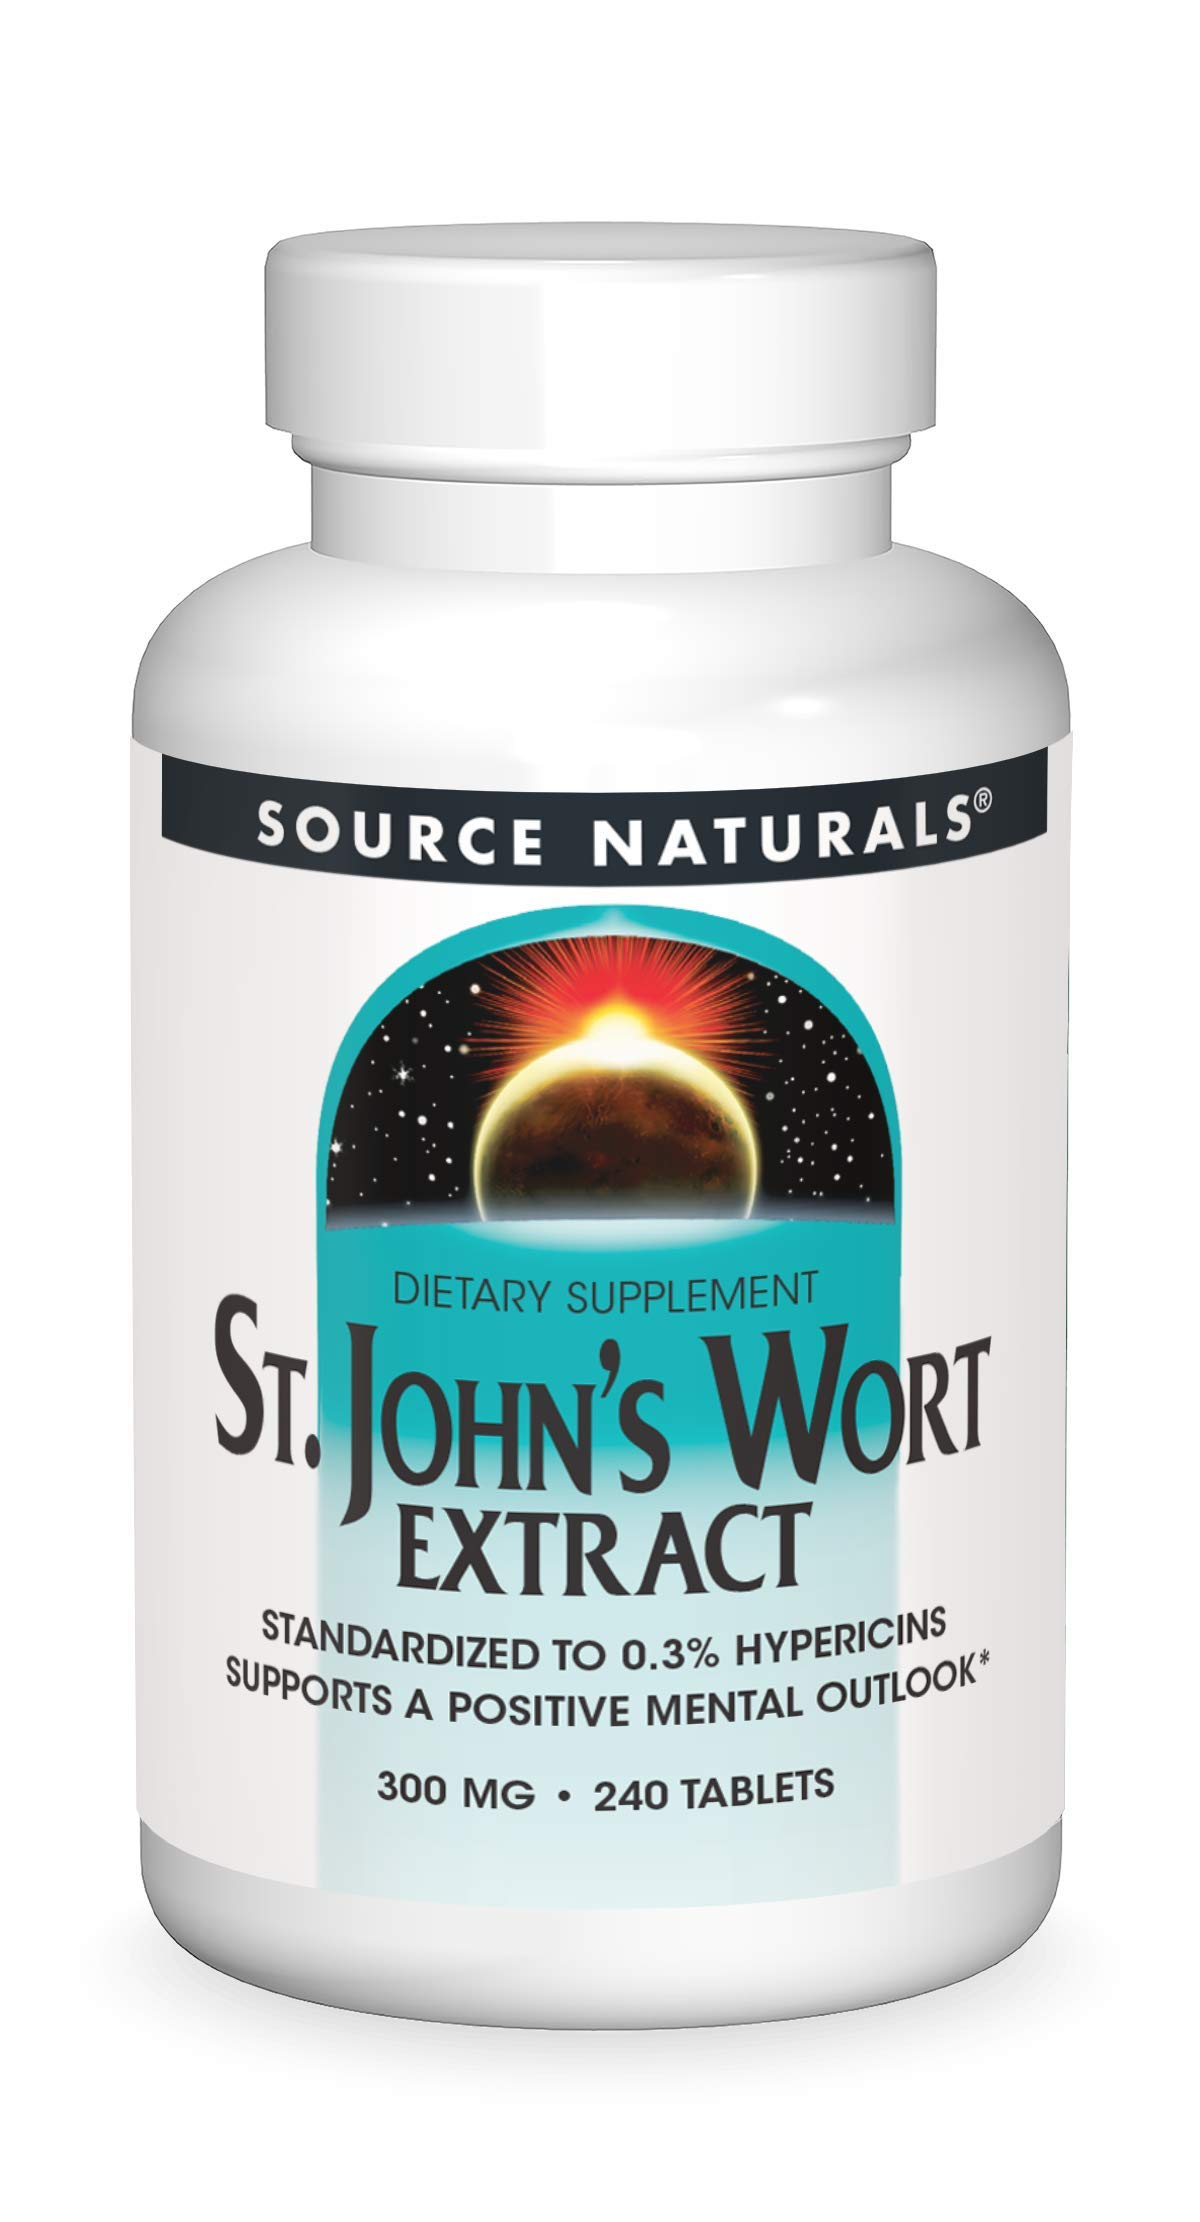 Source Naturals St. Johns Wort Extract 300 mg Supports a Positive Mental Outlook - 240 Tablets